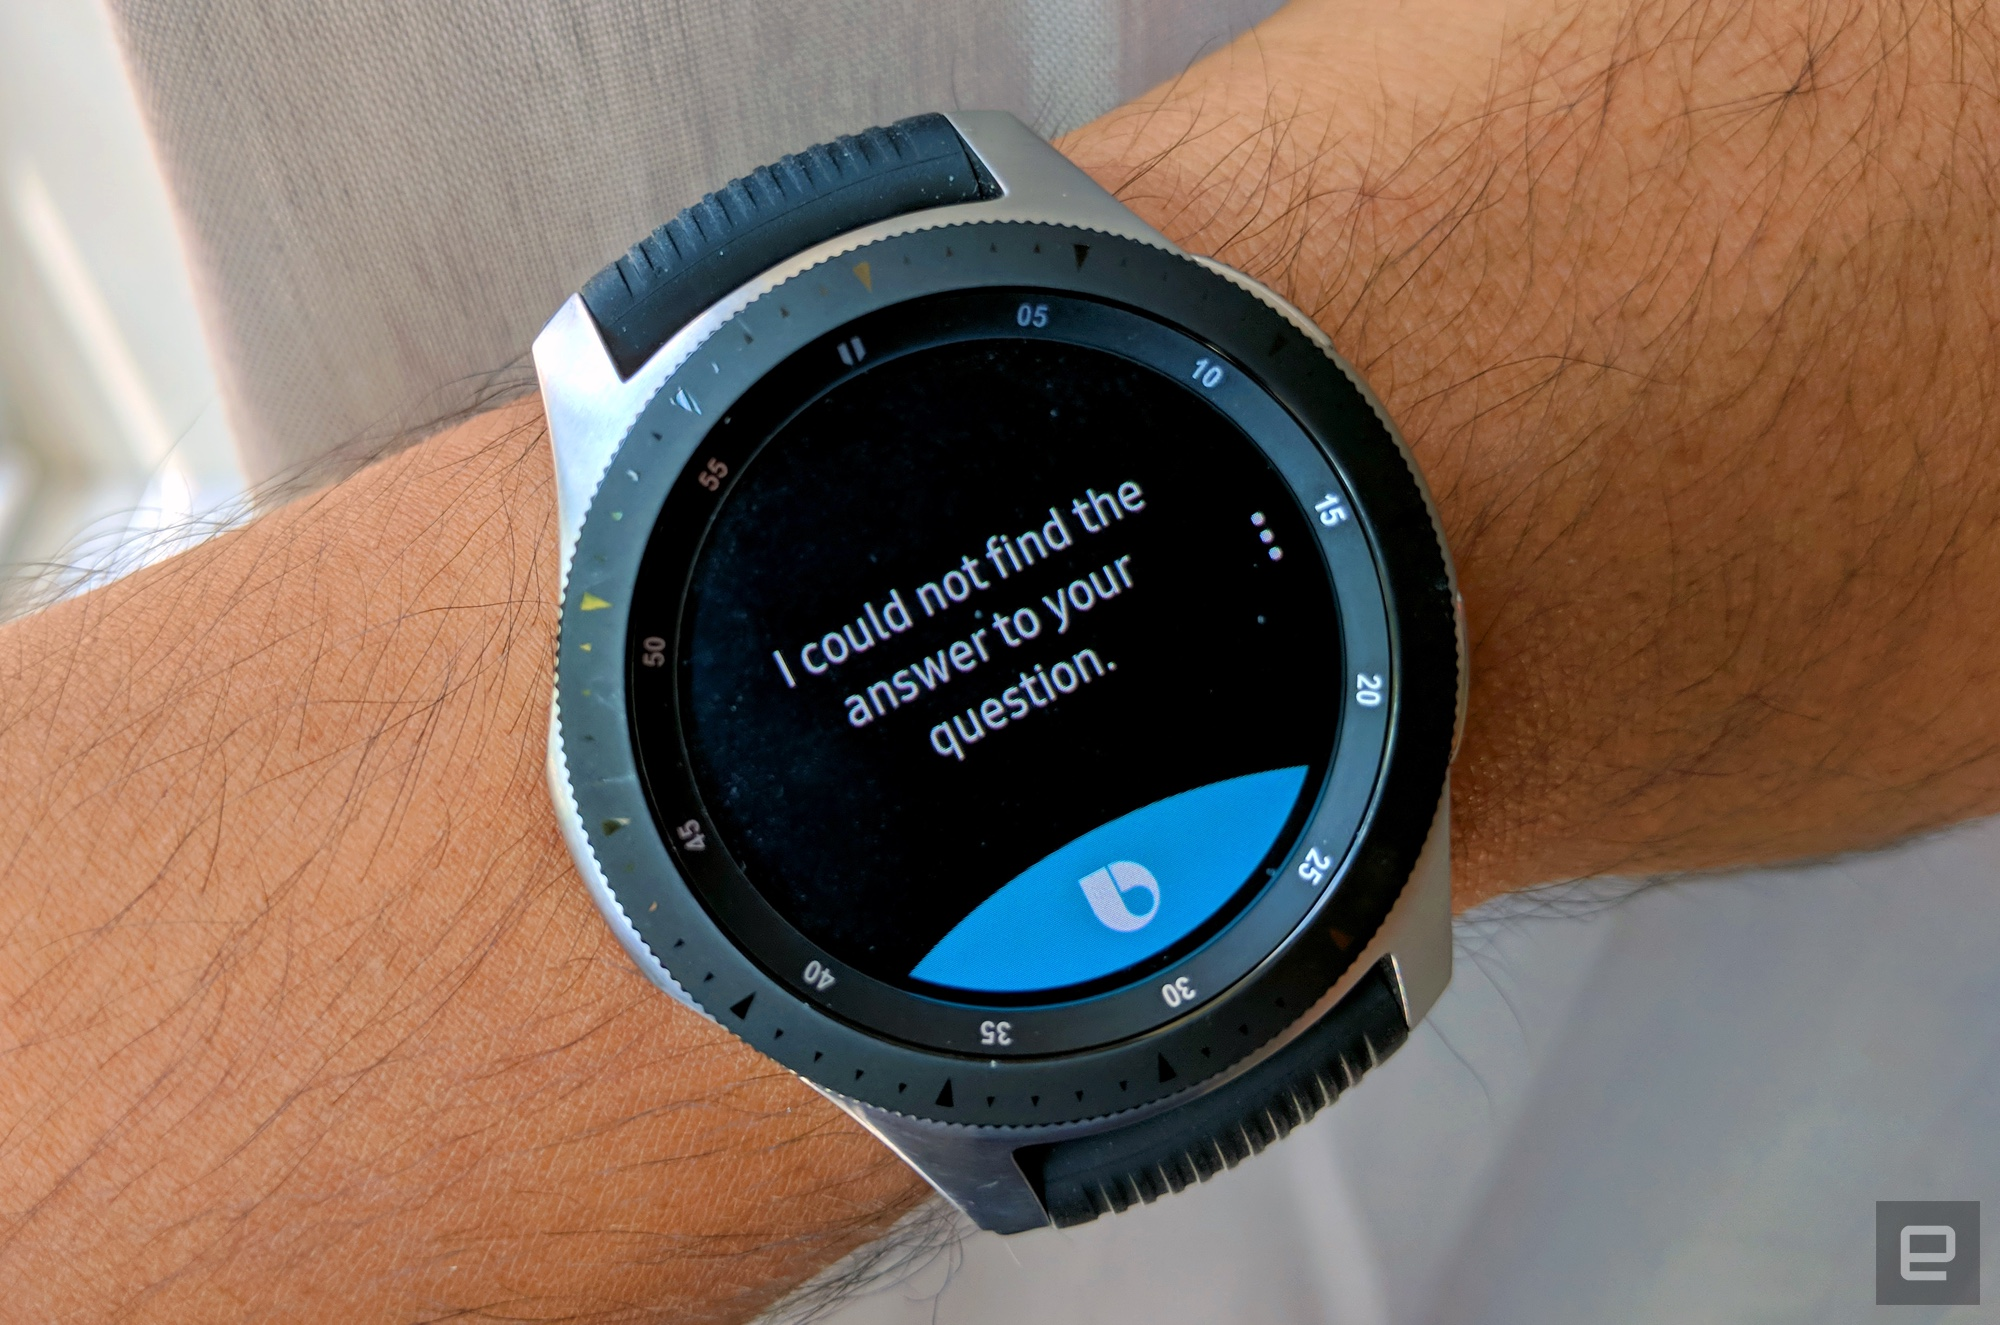 Samsung Galaxy Watch review: Safe but satisfying